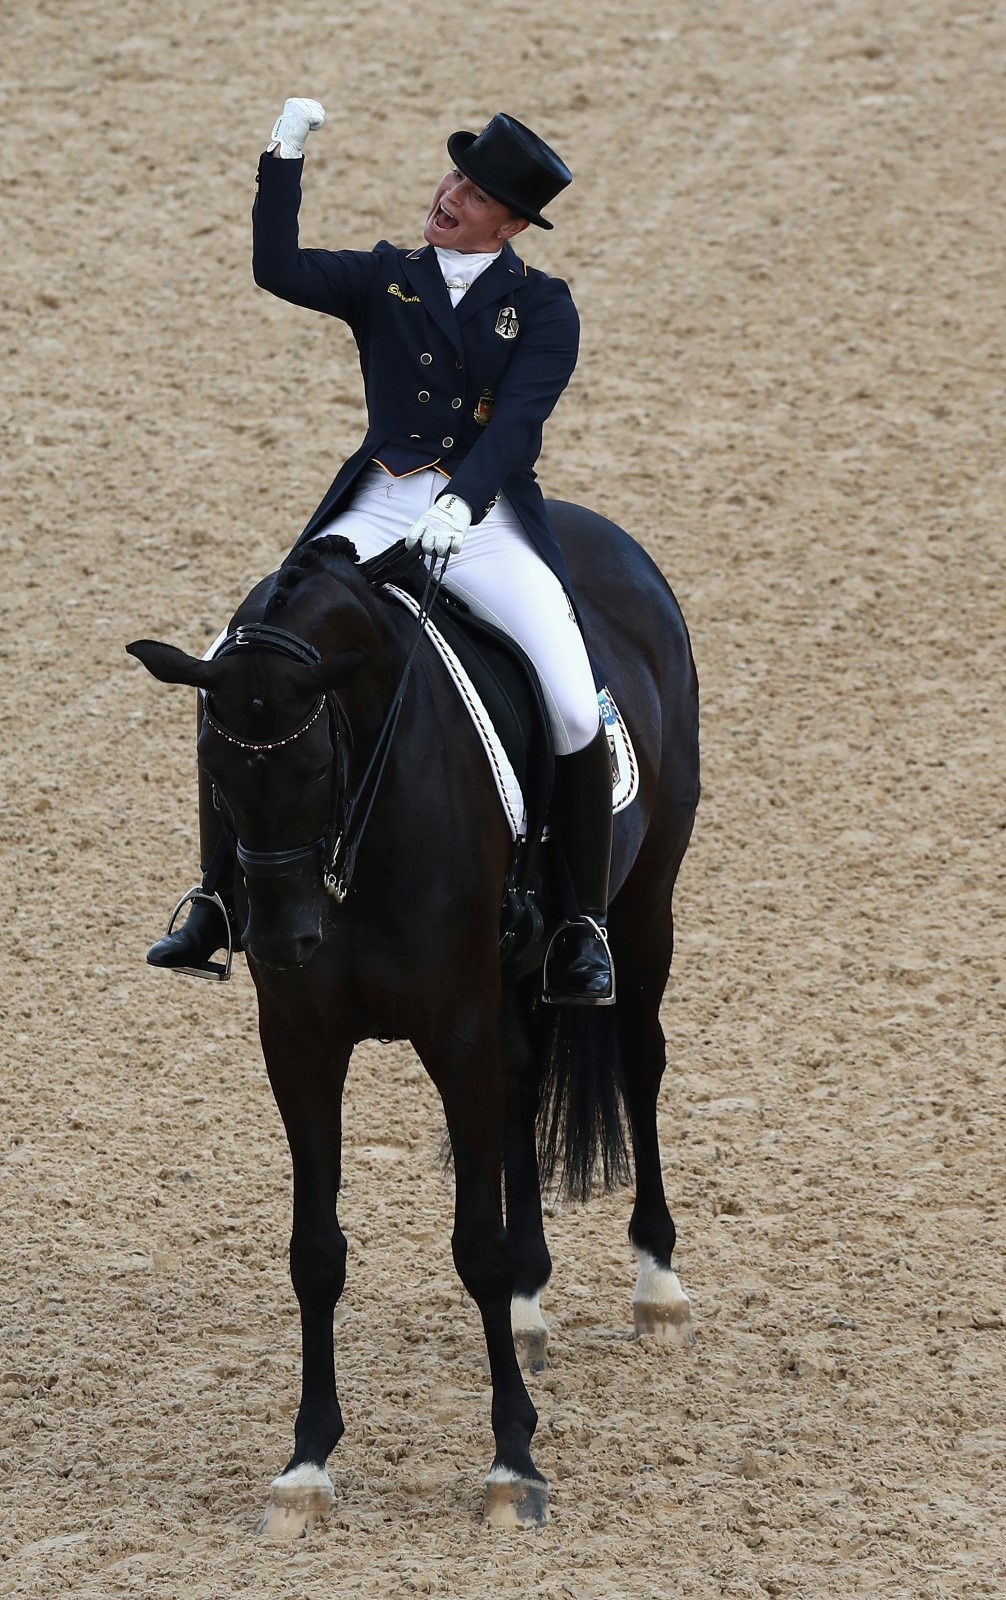 Equestrian Dressage - Team Mixed